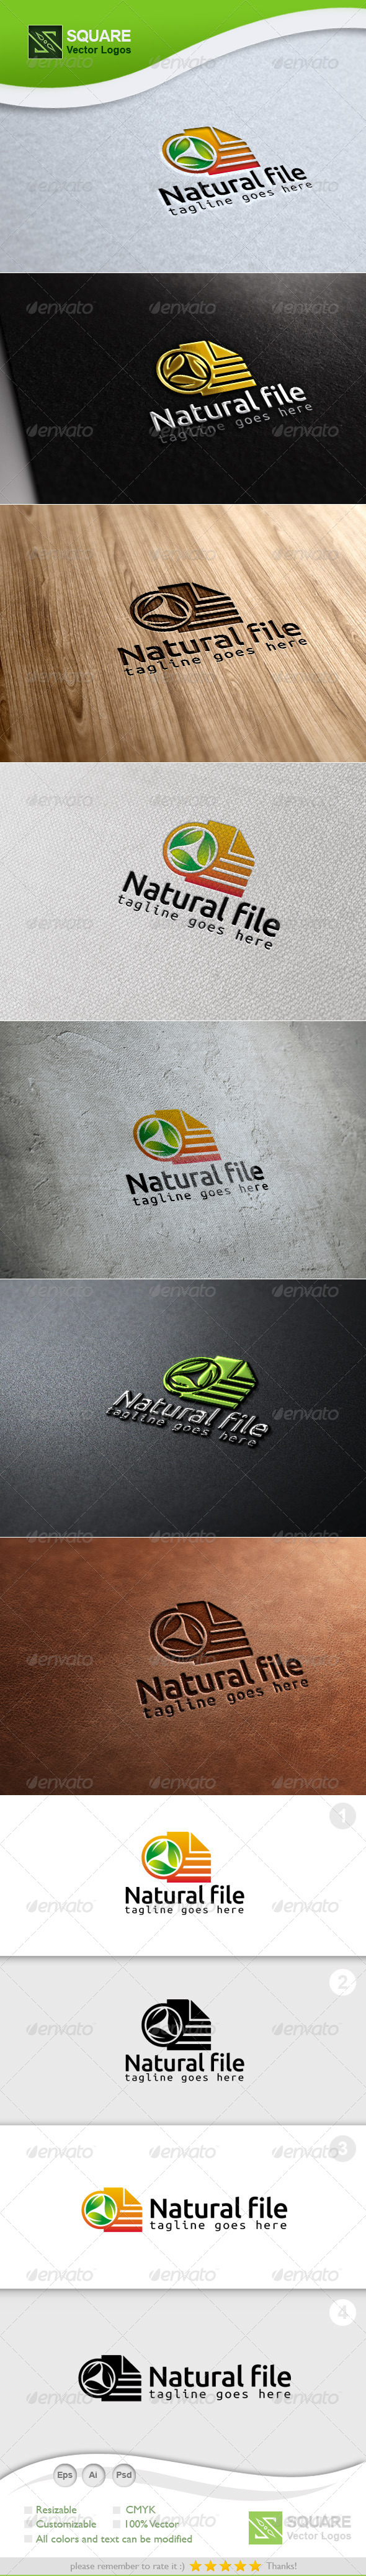 GraphicRiver Leafs File Vector Logo Template 6878262